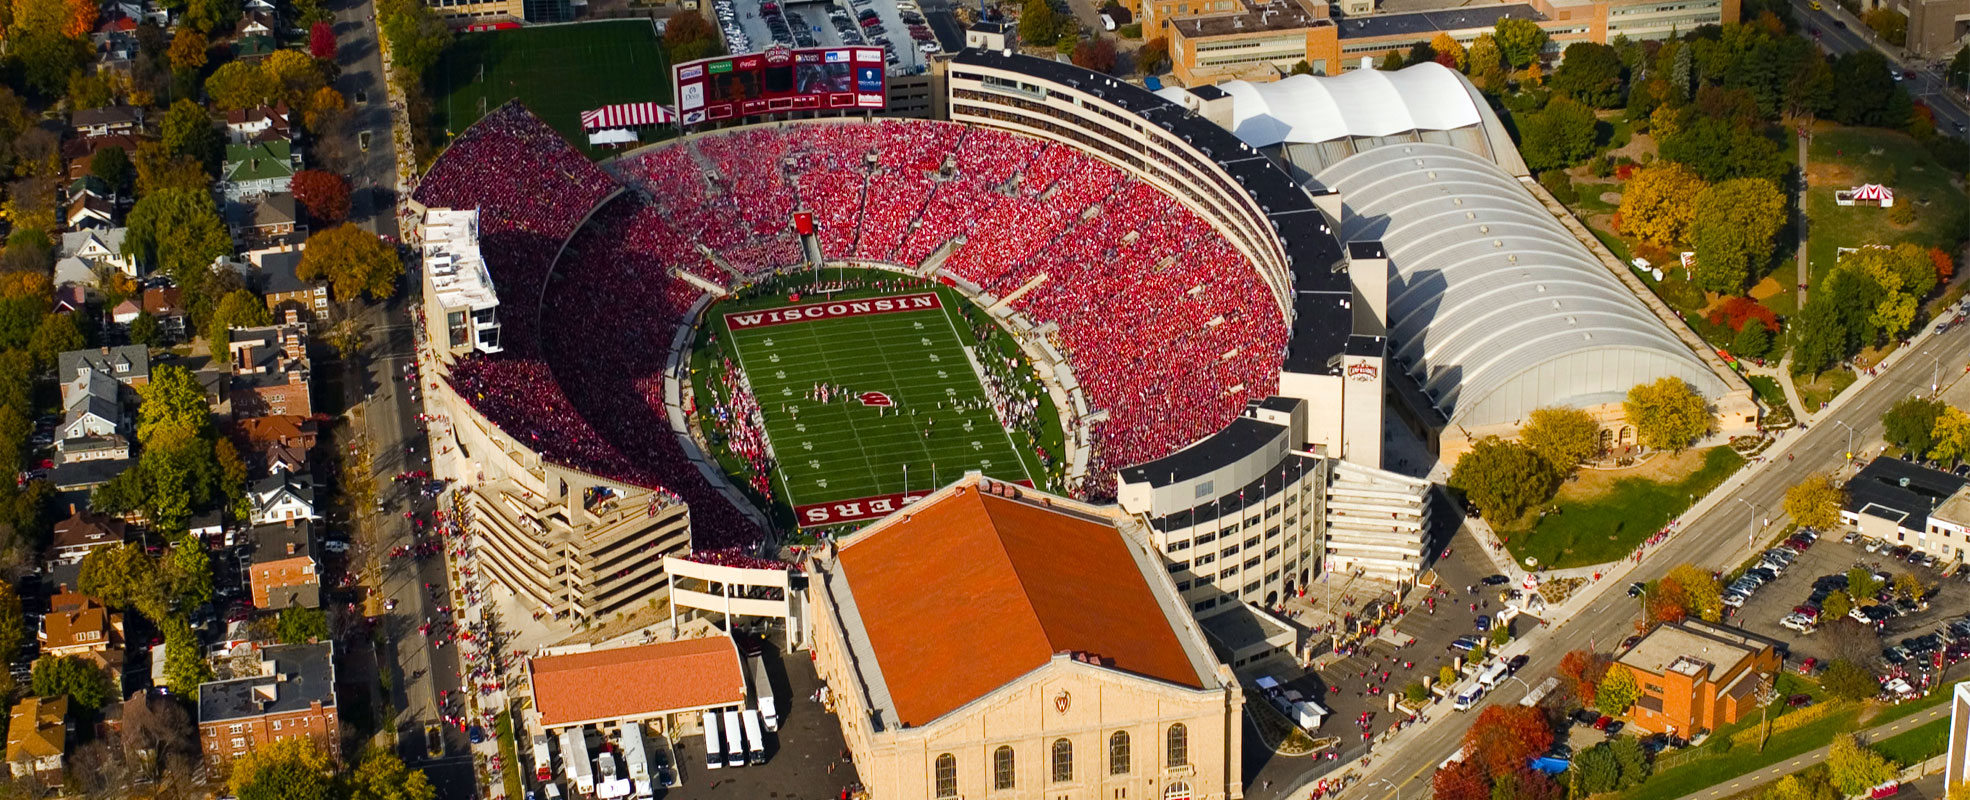 An ariel photo of a more modern Camp Randall complex from 2015 that contains Camp Randall Stadium, the Field House, The SHELL, and surrounding buildings.